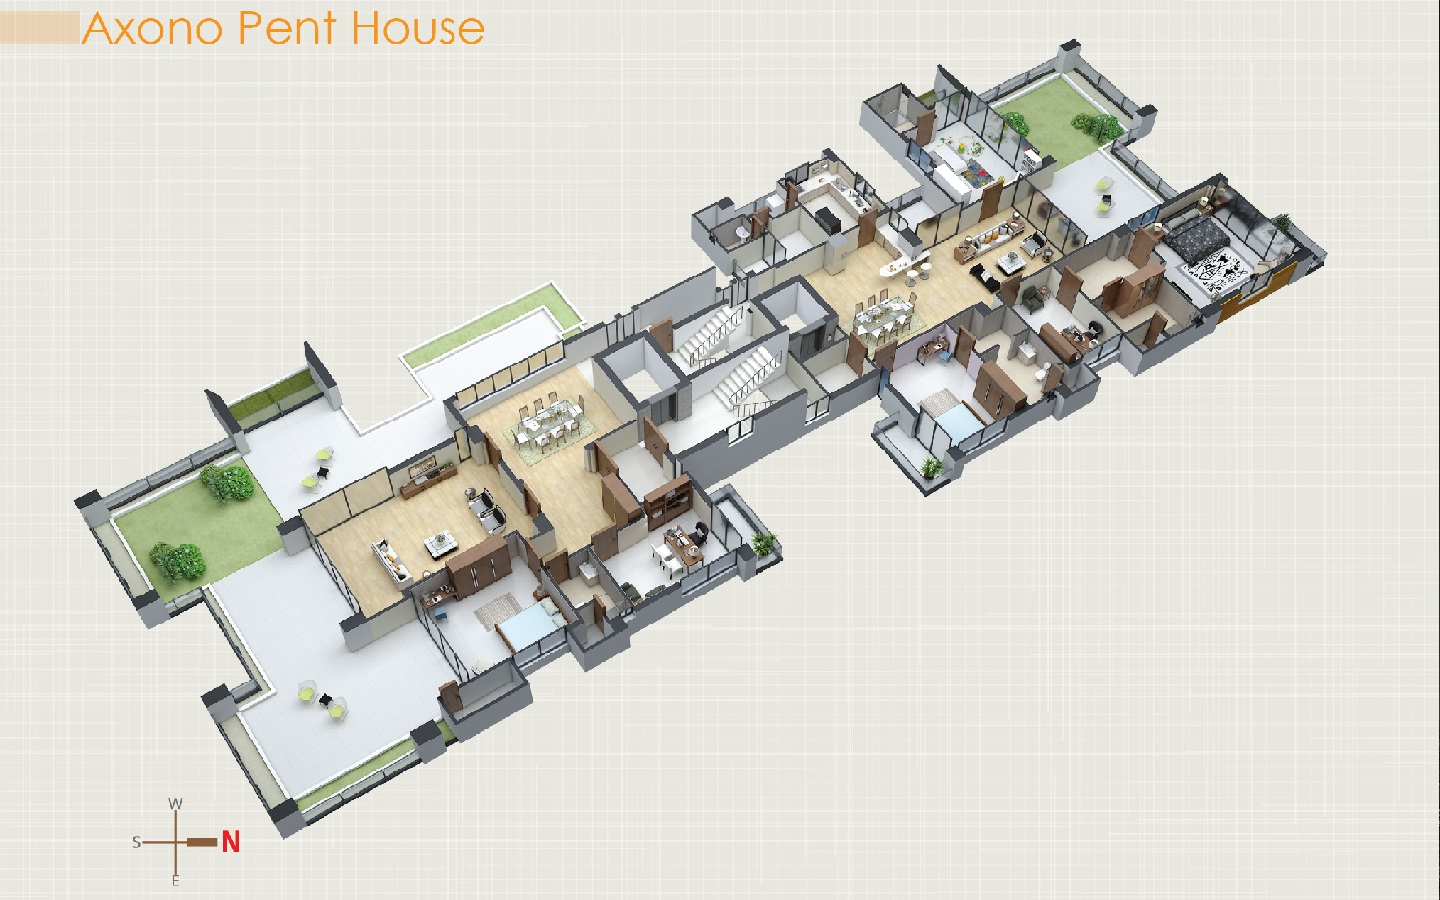 Axonometric view of the penthouse